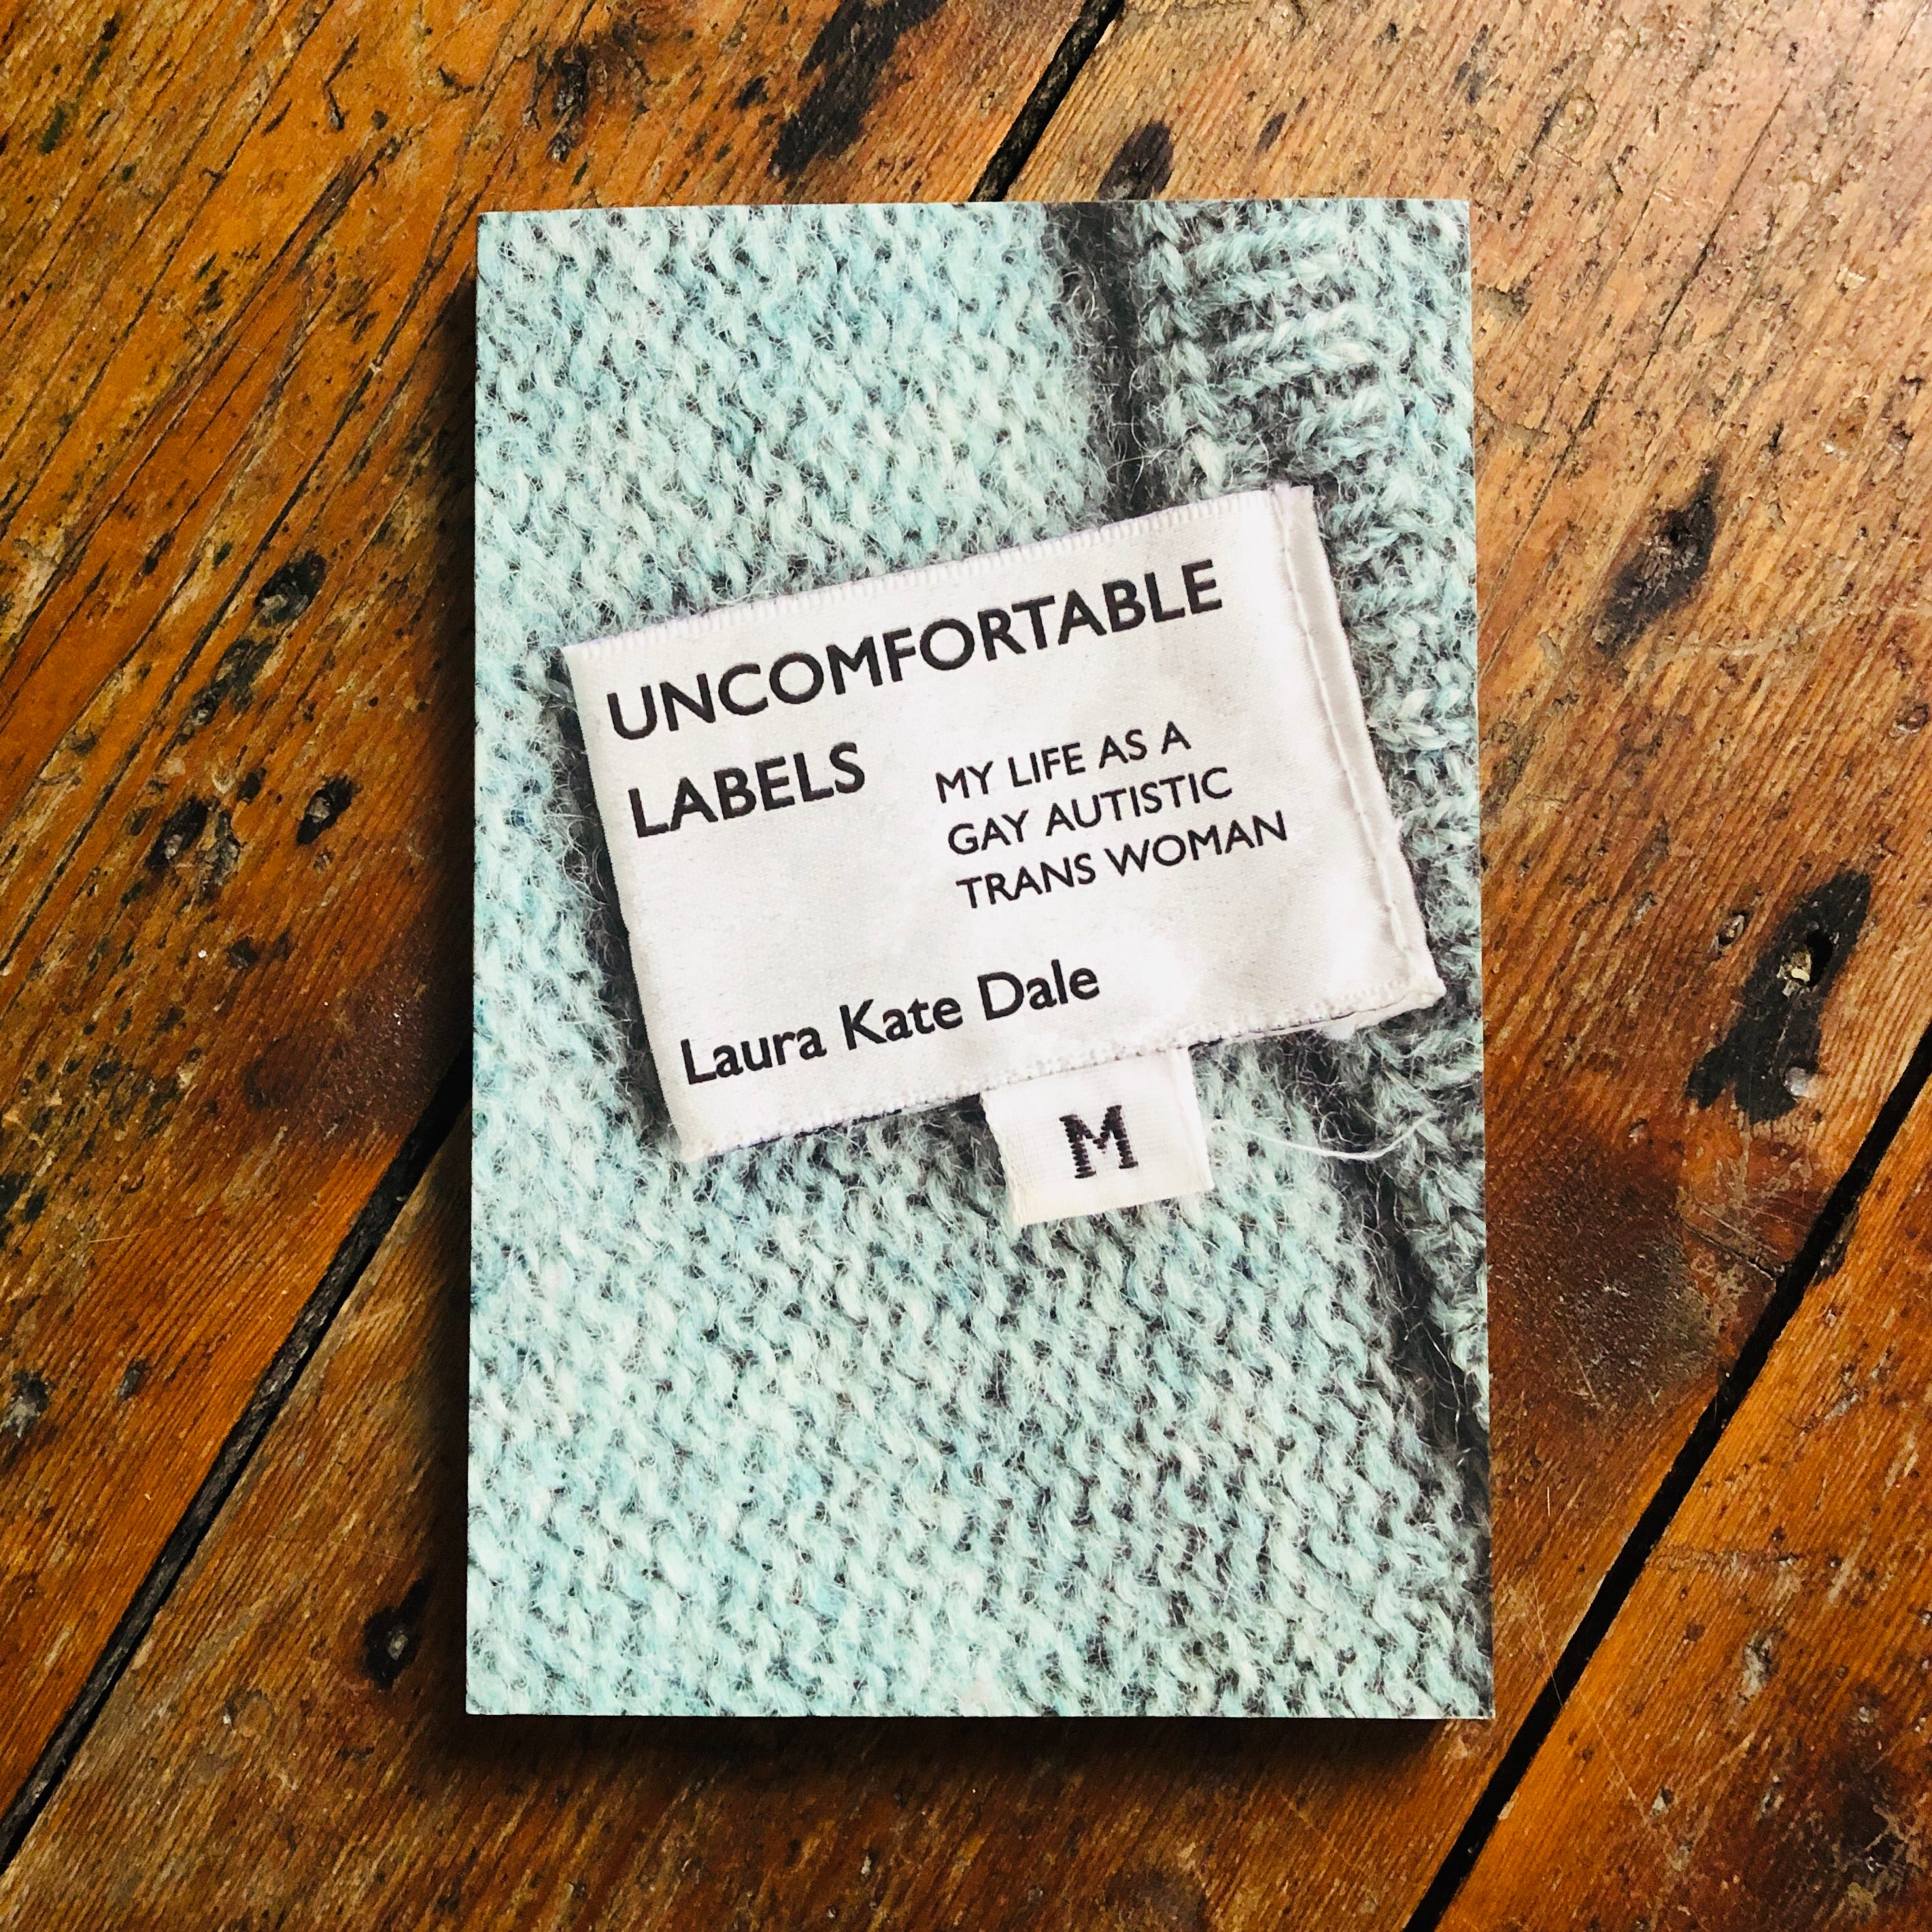 Uncomfortable Labels: My Life As A Gay Autistic Trans Woman | Laura Kate Dale